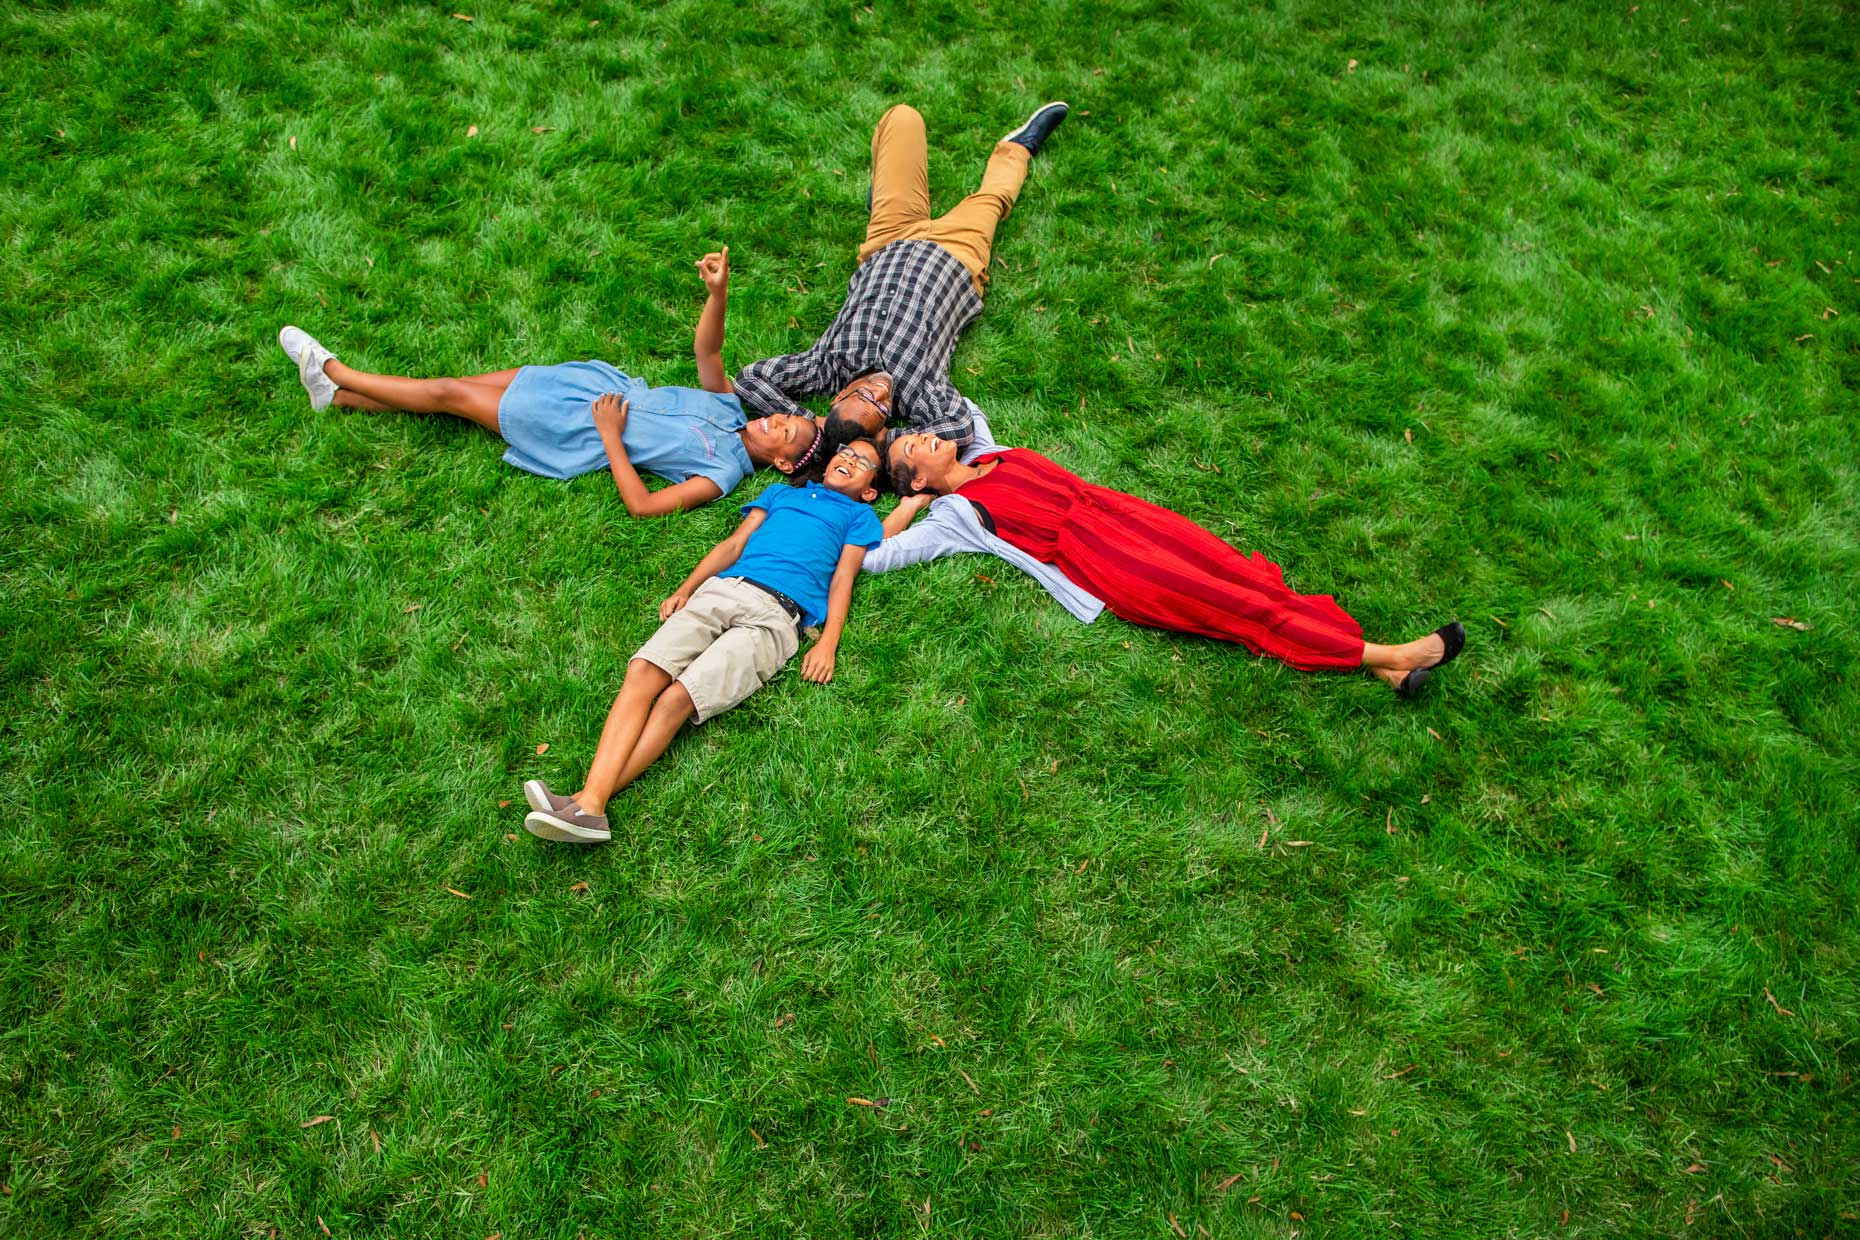 family-laying-on-grass_Robert_Holland